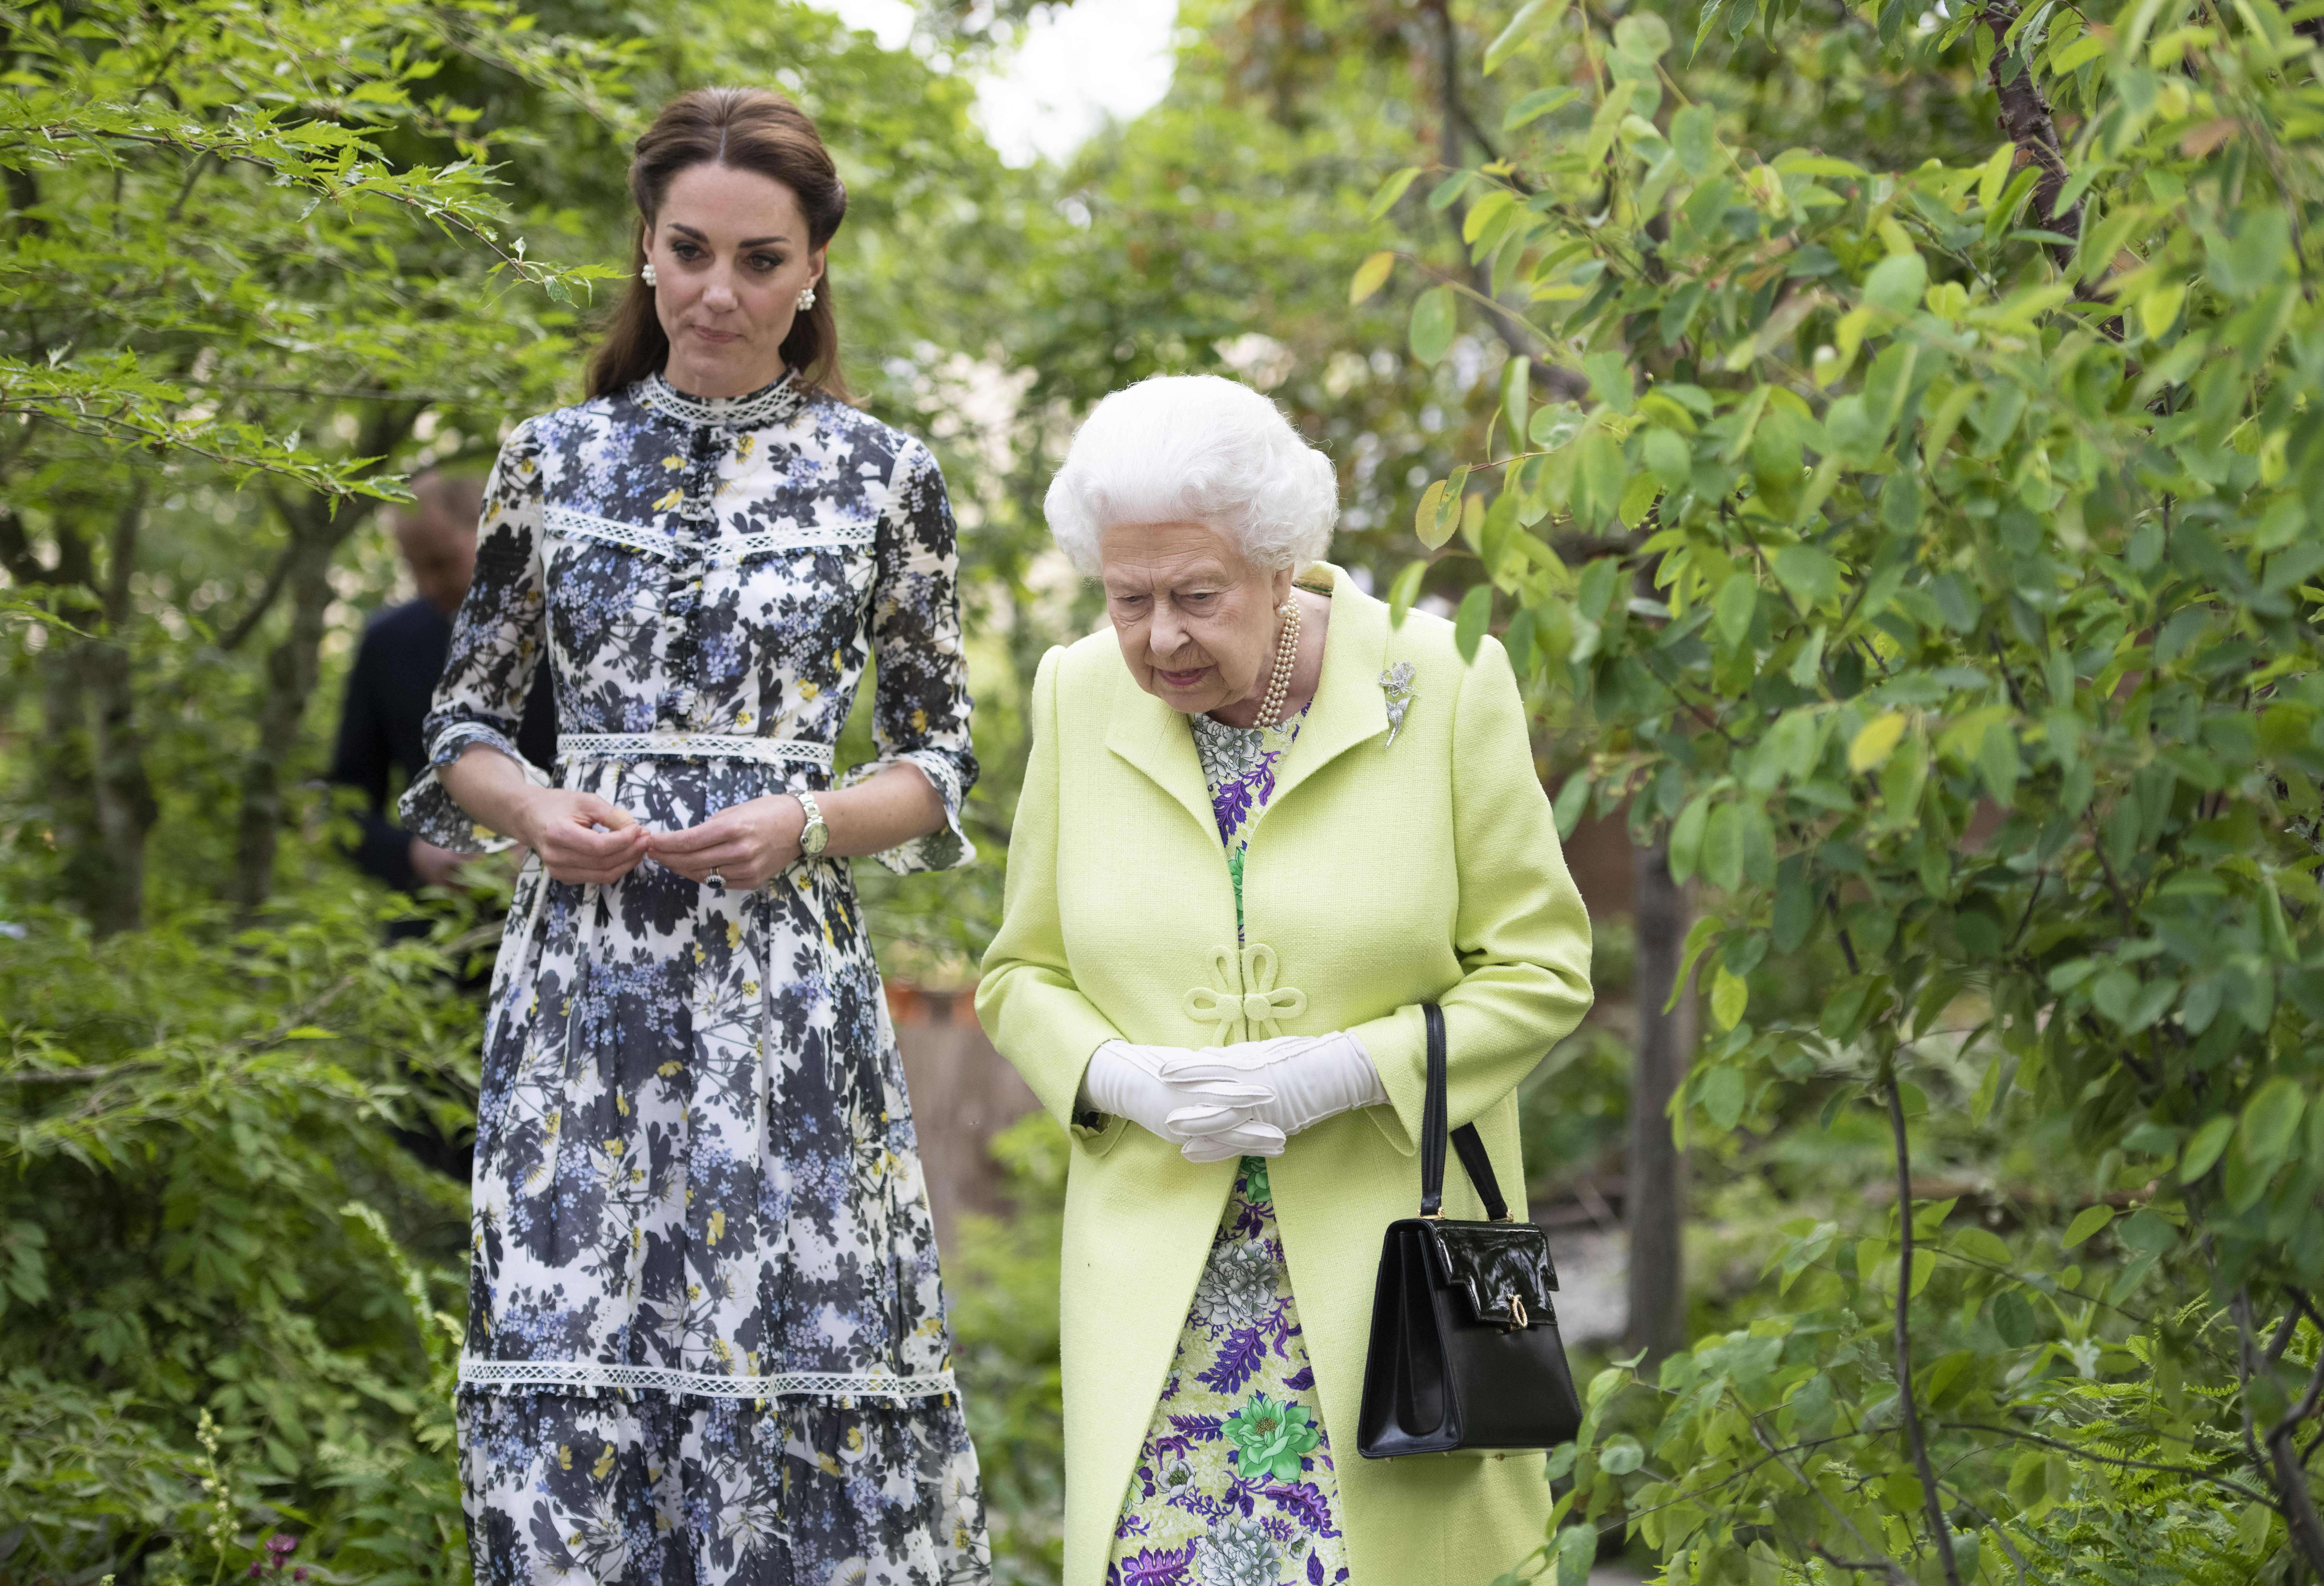 Queen Elizabeth II and Catherine, Duchess of Cambridge at the RHS Chelsea Flower Show 2019 press day at Chelsea Flower Show on May 20, 2019 in London, England.